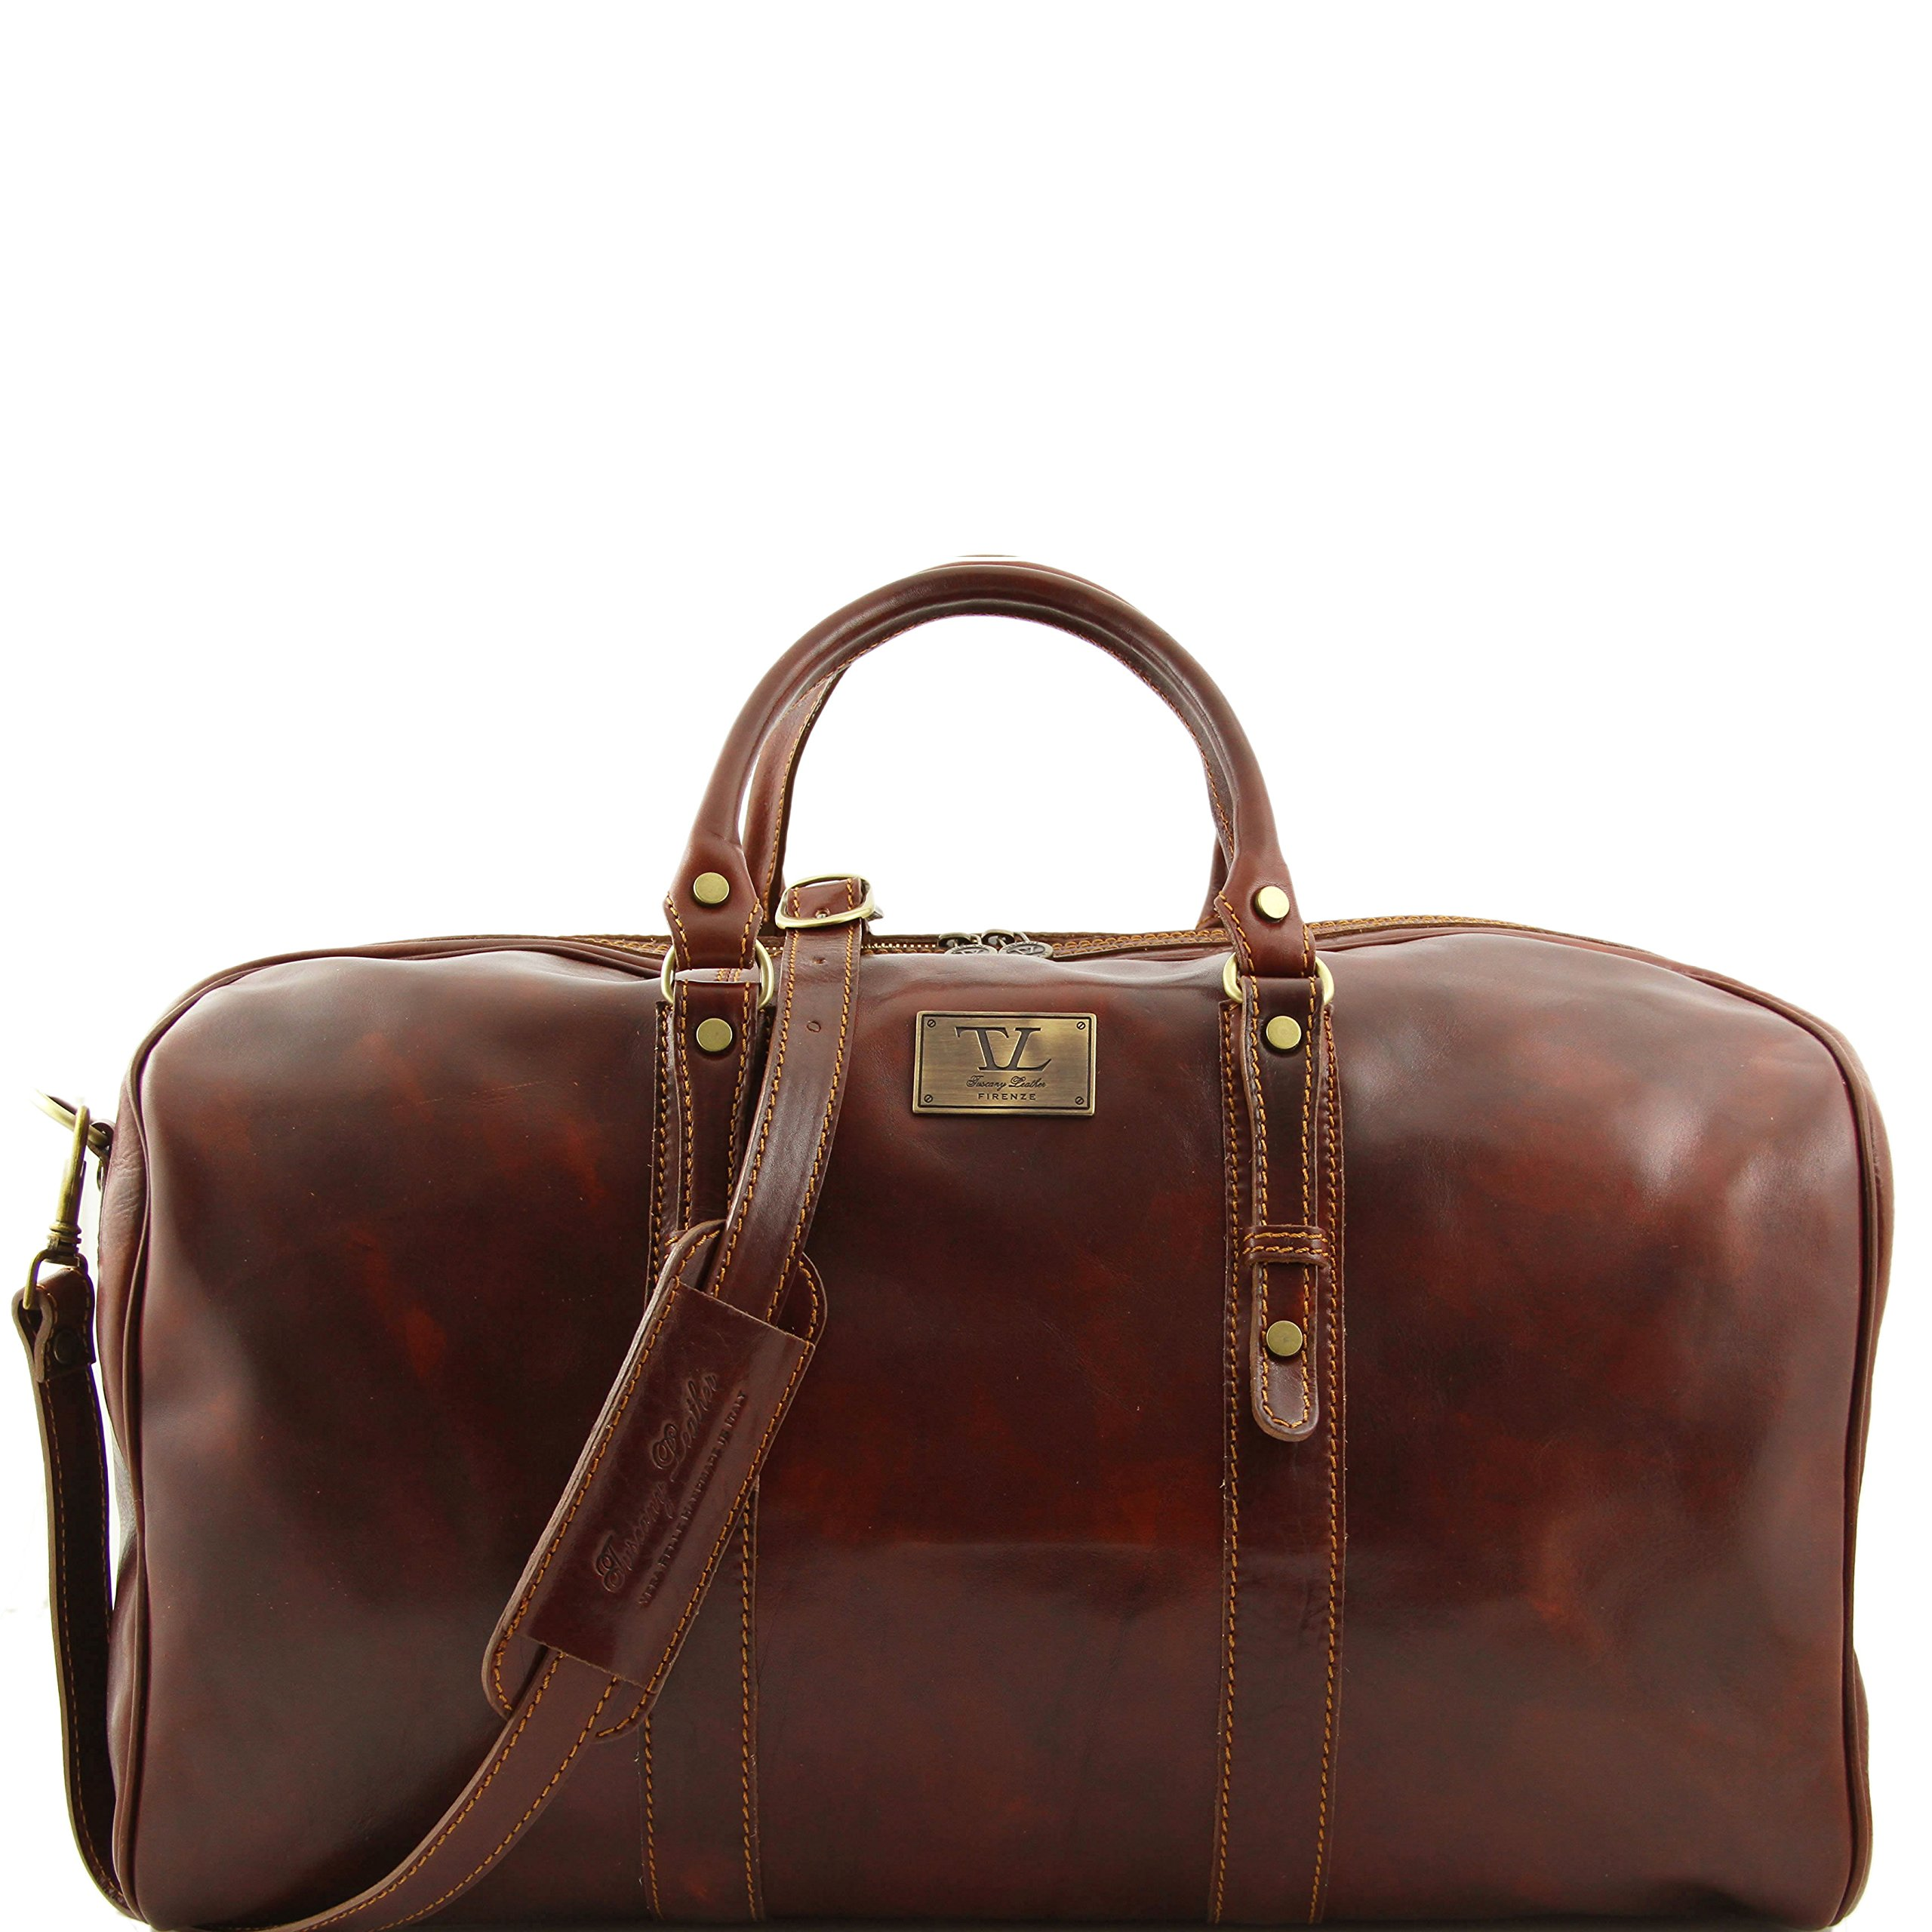 Tuscany Leather Francoforte Exclusive Leather Weekender Travel Bag - Large size Brown